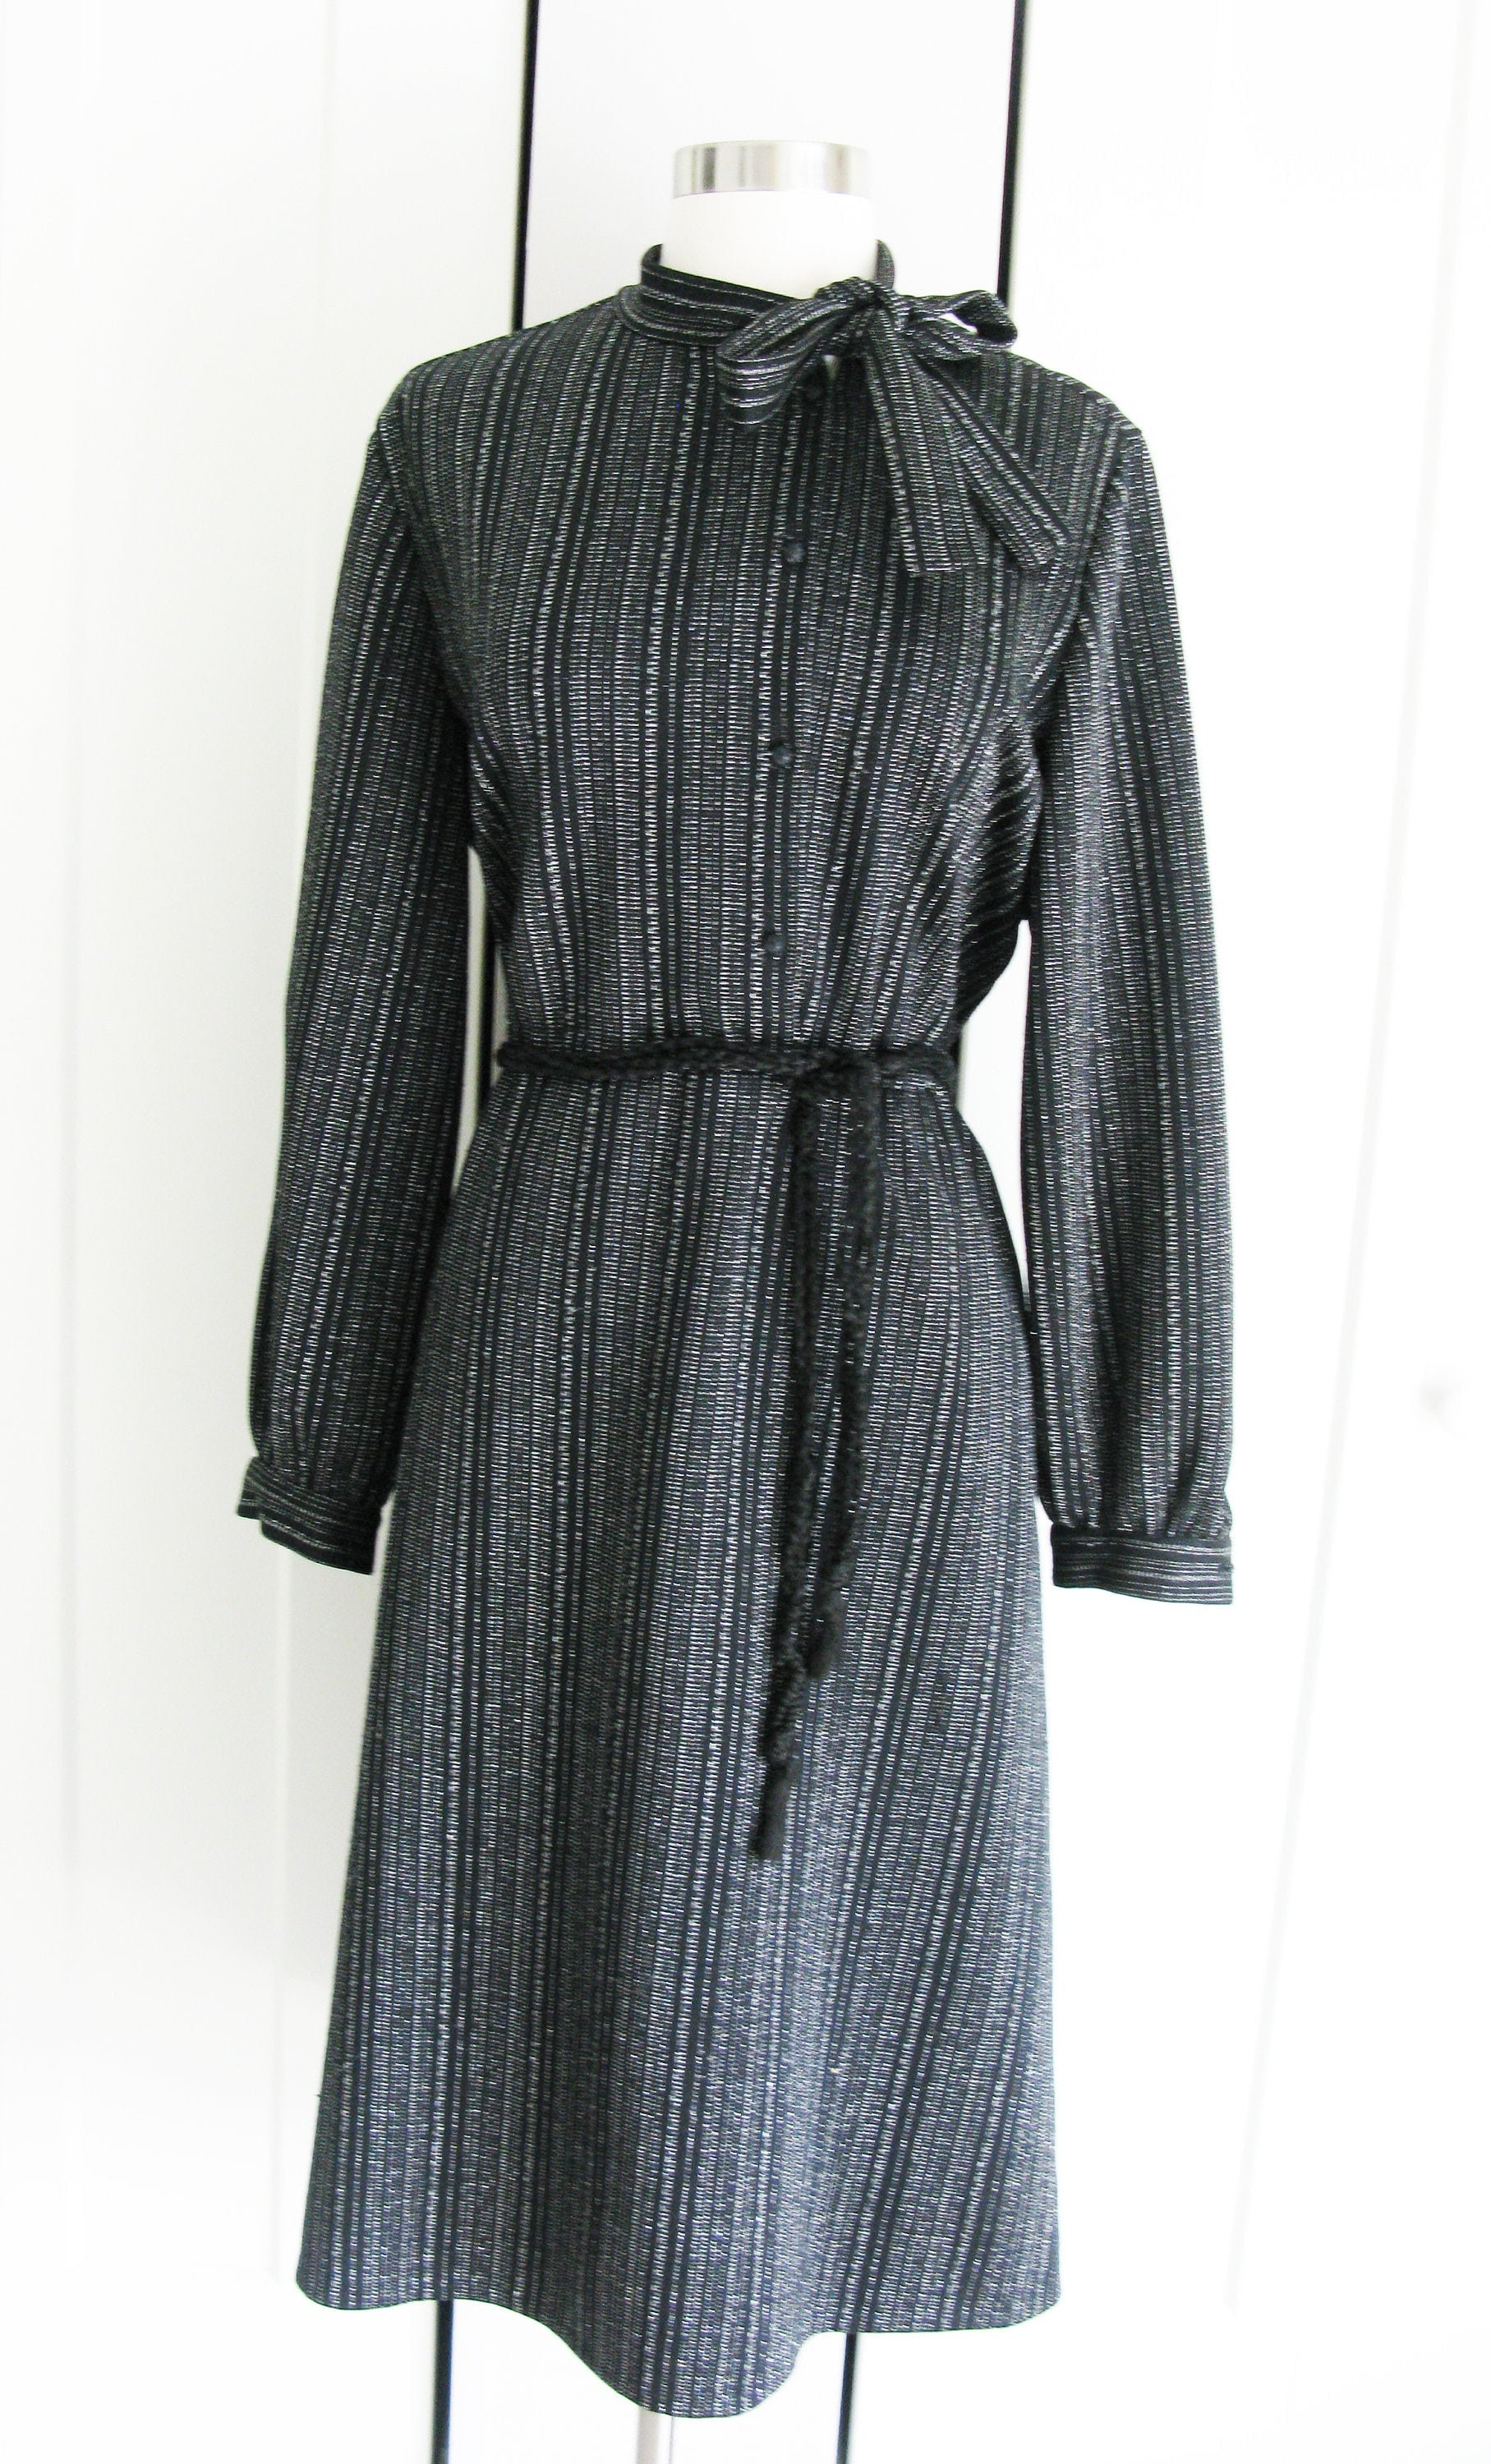 Vintage Scarf Styles -1920s to 1960s Vintage 1970s Shirt Waist Black Polyester Dress With Metallic Micro Stripe  Size X Large $23.00 AT vintagedancer.com